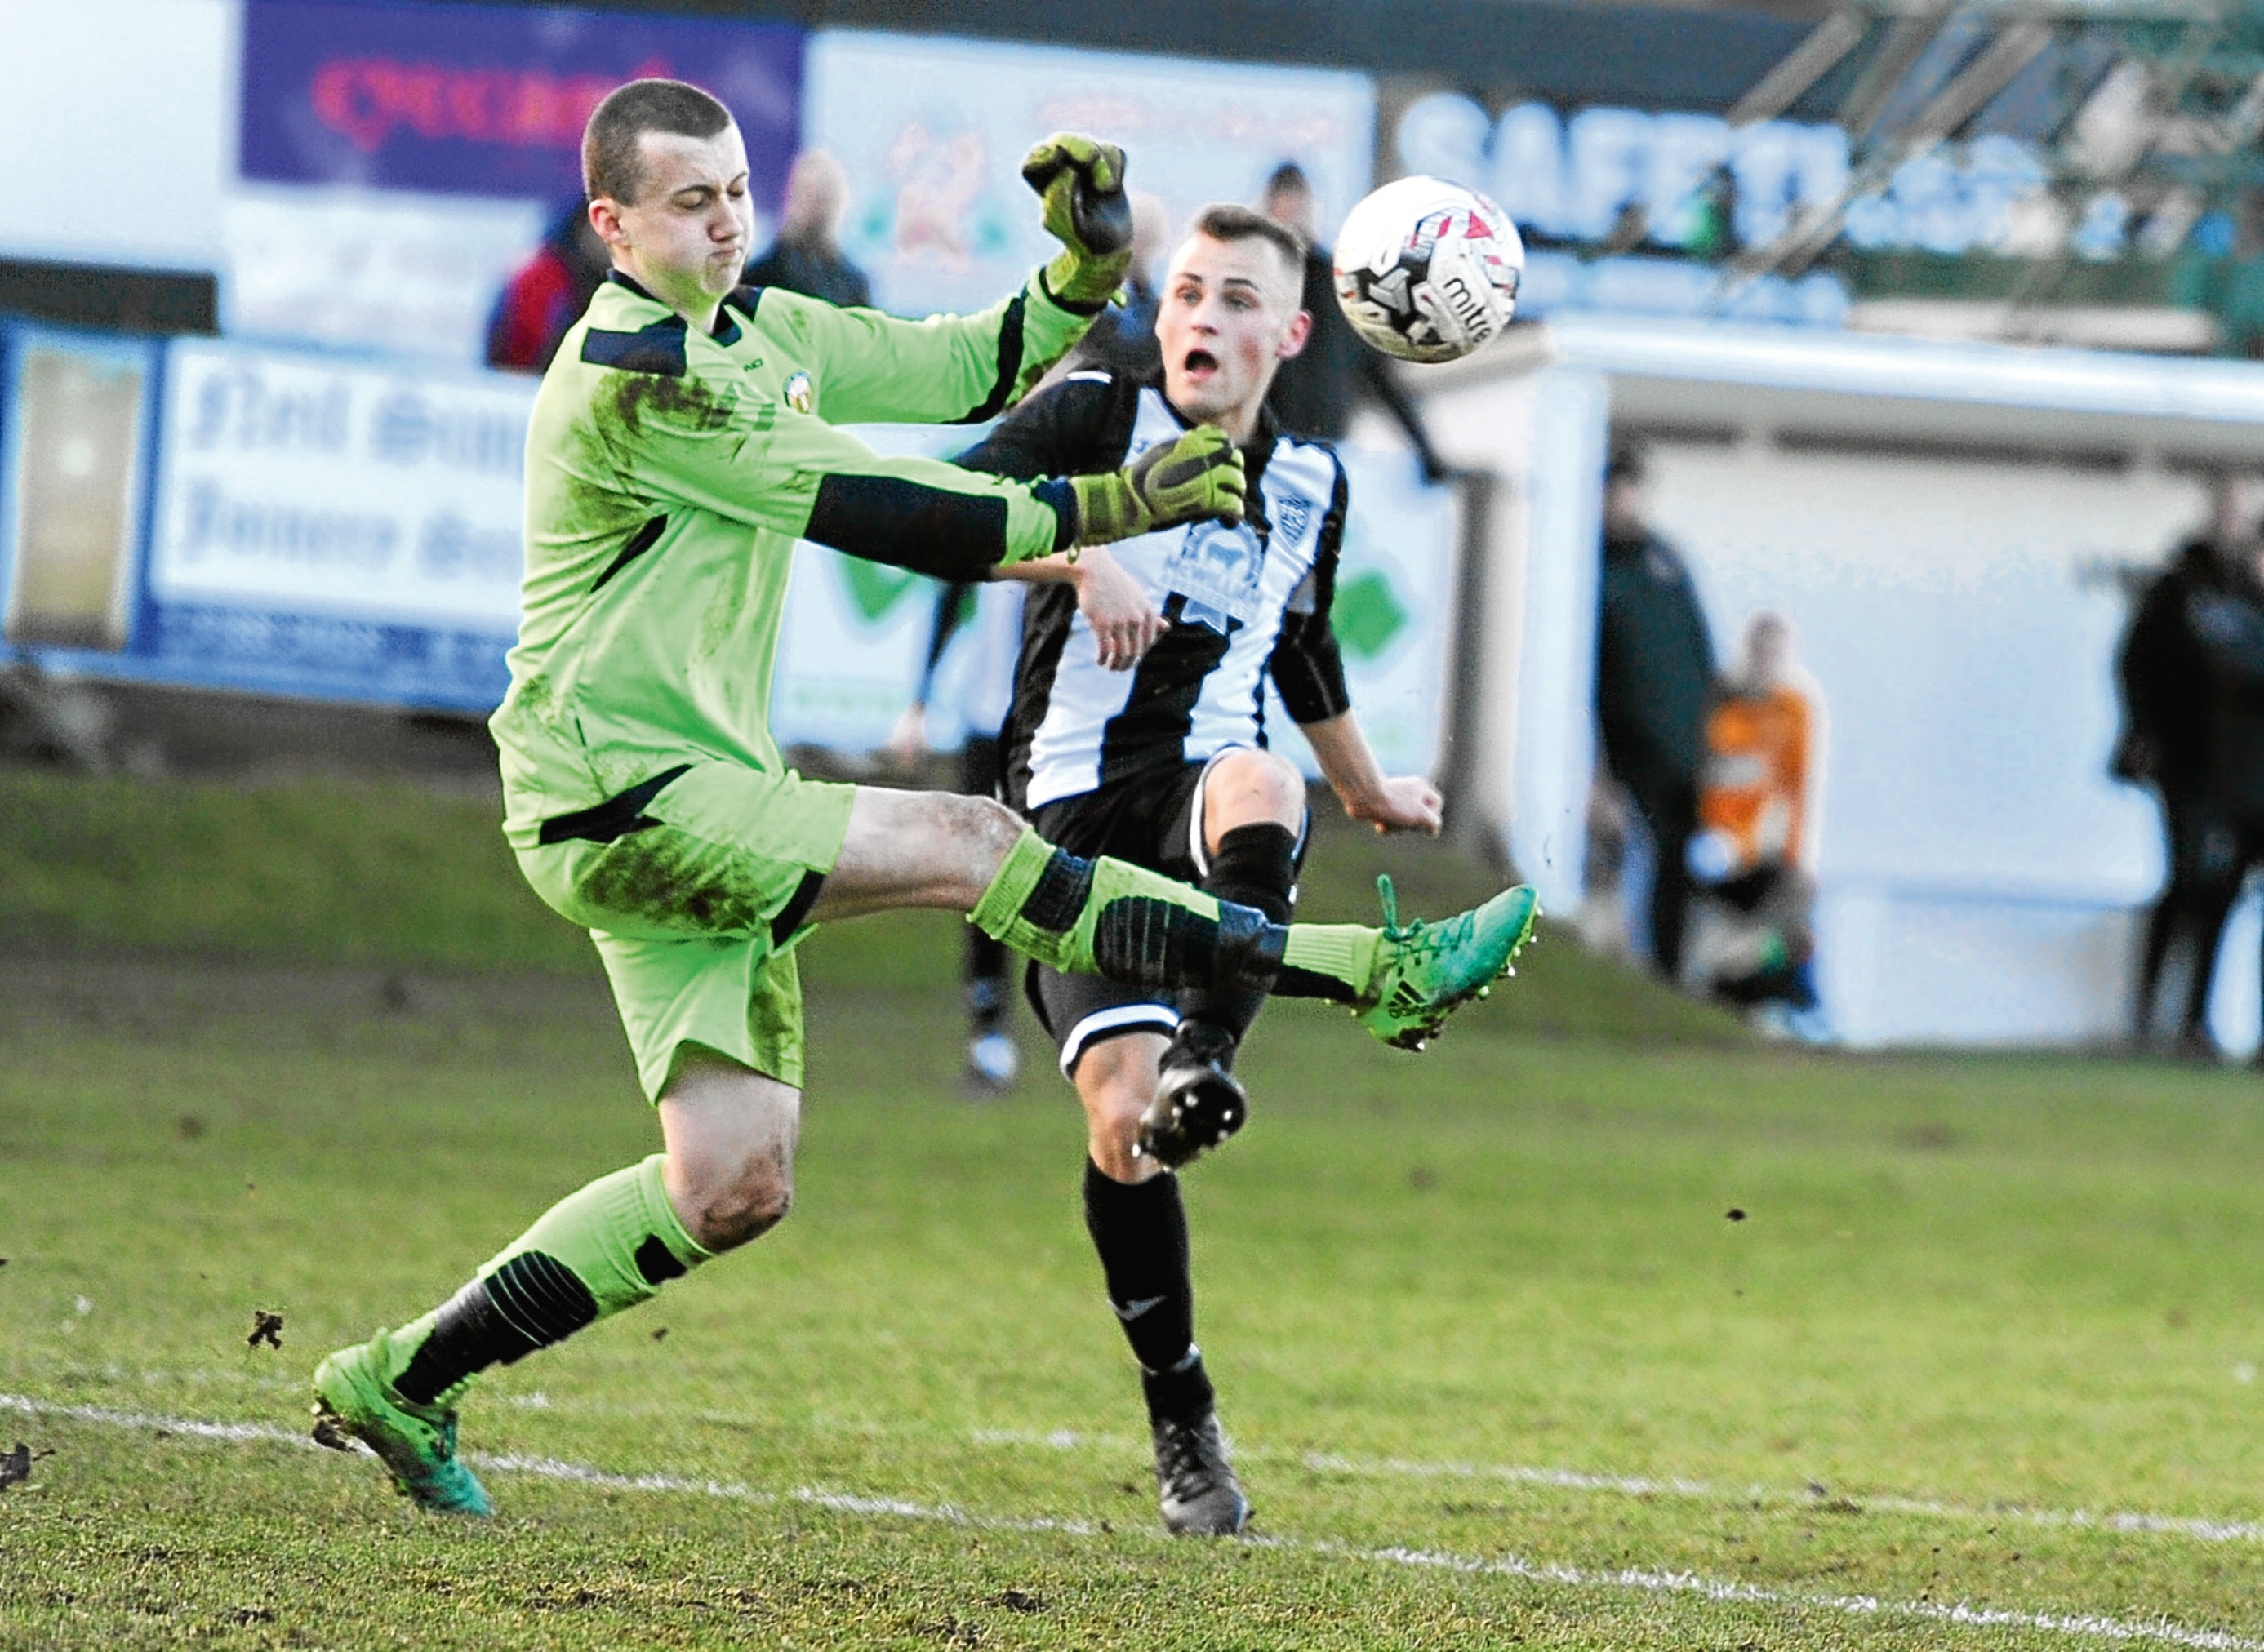 Highland League - Fraserburgh v. Fort William. Fraserburgh Greg Buchan and Fort William keeper Martin MacKinnon. Picture by COLIN RENNIE   February 10, 2018.